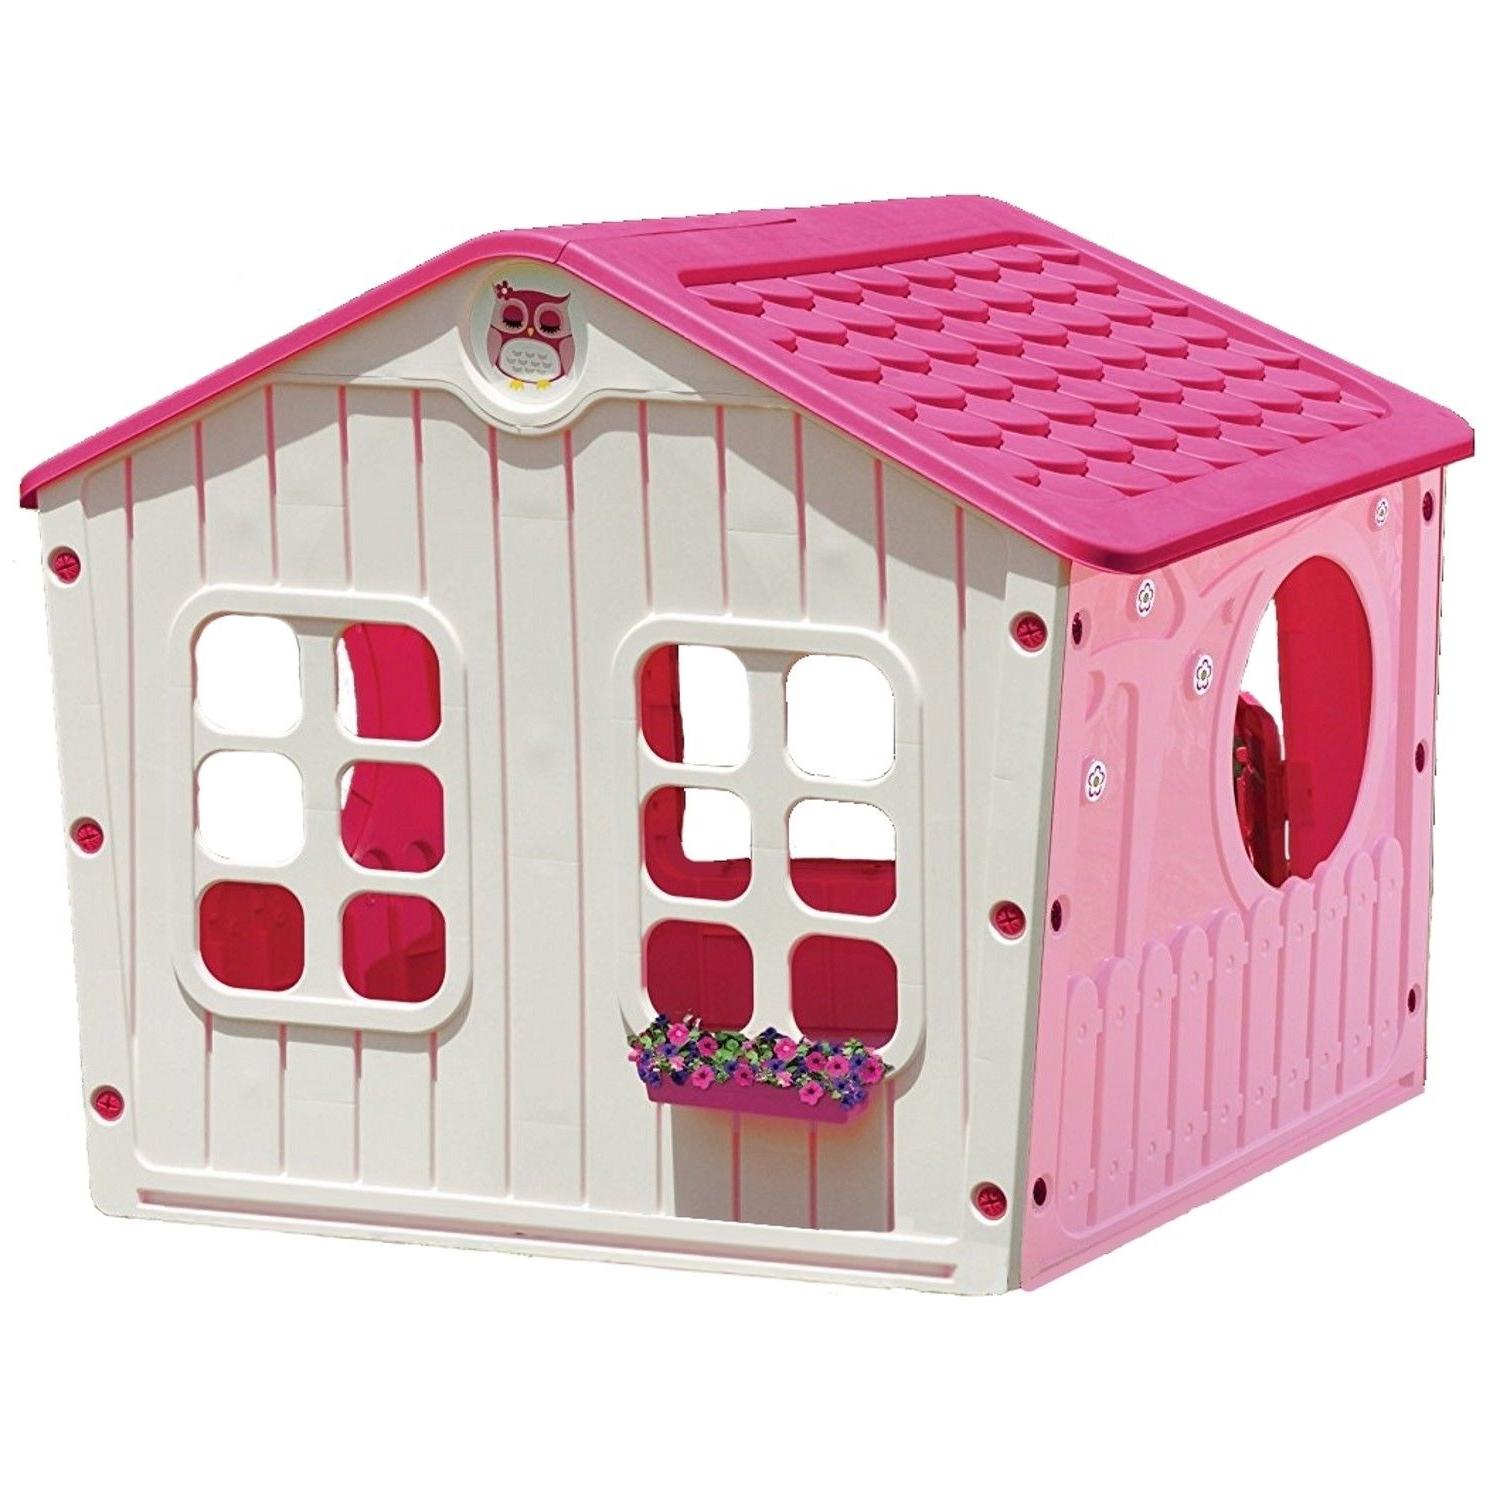 Outdoor Pink Playhouse Princess Village House Cottage Castle Large